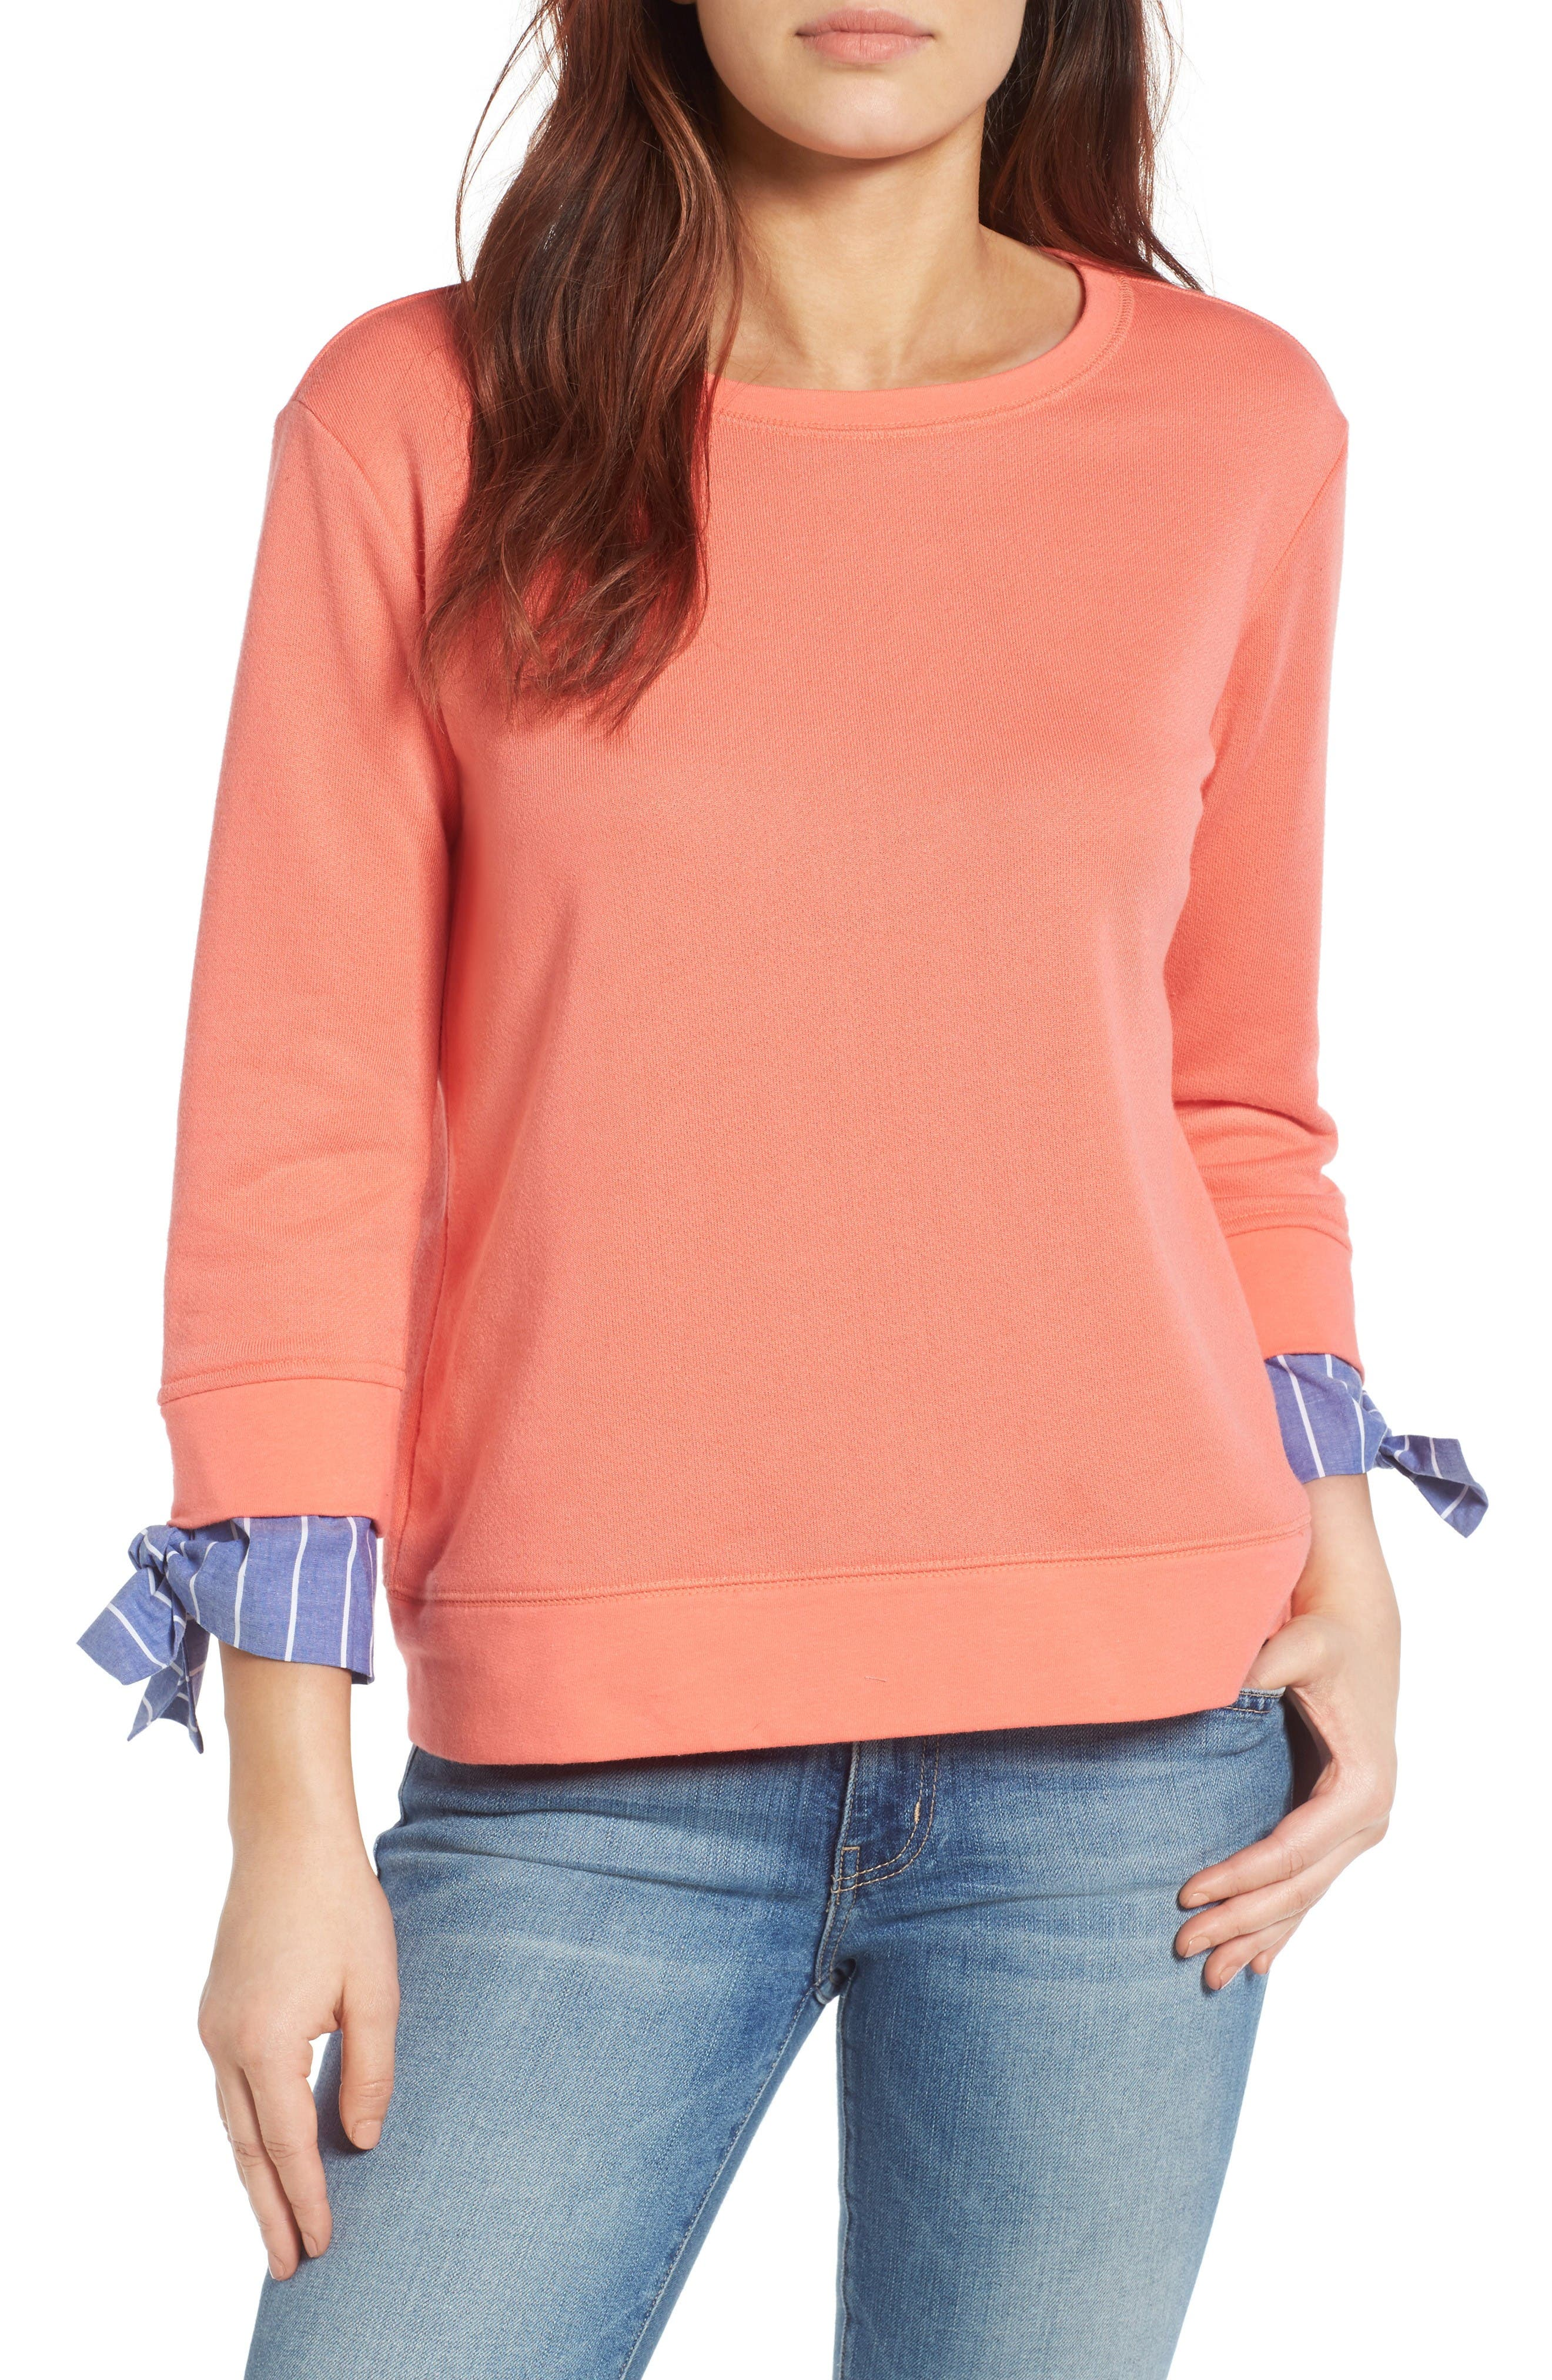 Main Image - Gibson Tie Sleeve Sweatshirt (Regular & Petite)